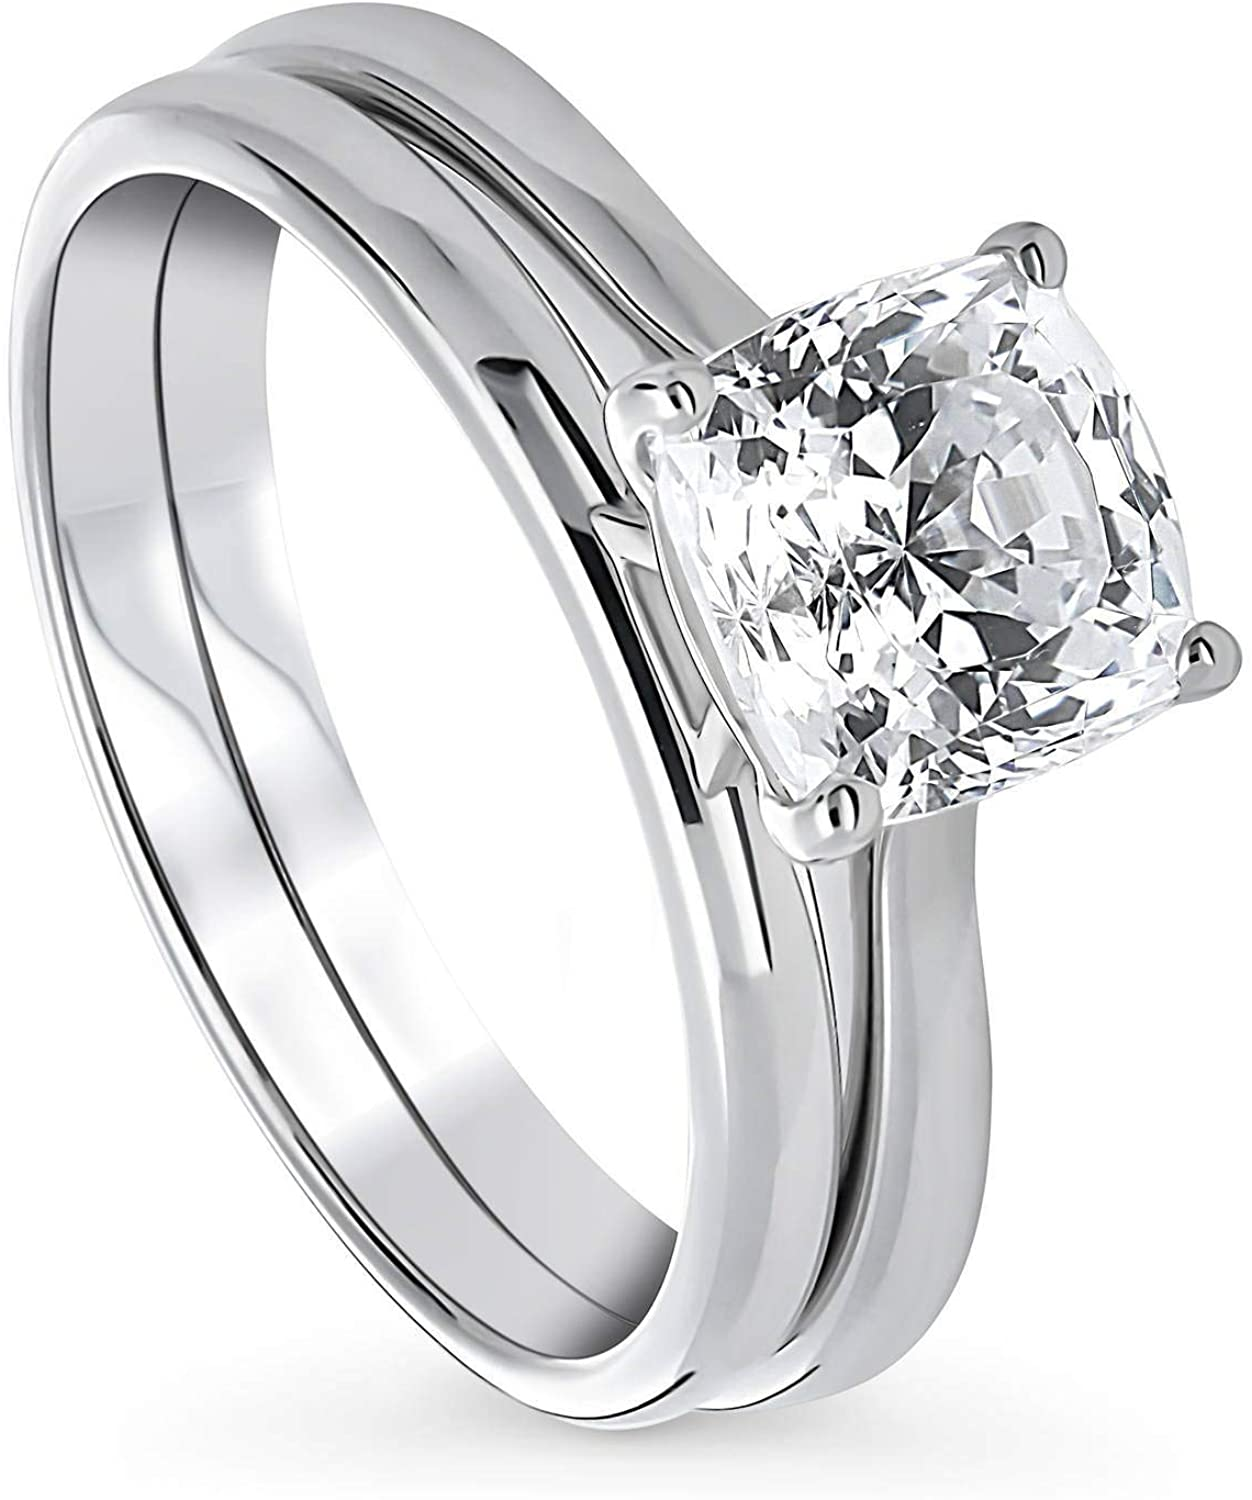 BERRICLE Rhodium Plated Sterling Silver Solitaire Engagement Wedding Ring Set Made with Swarovski Zirconia Cushion Cut 2 CTW